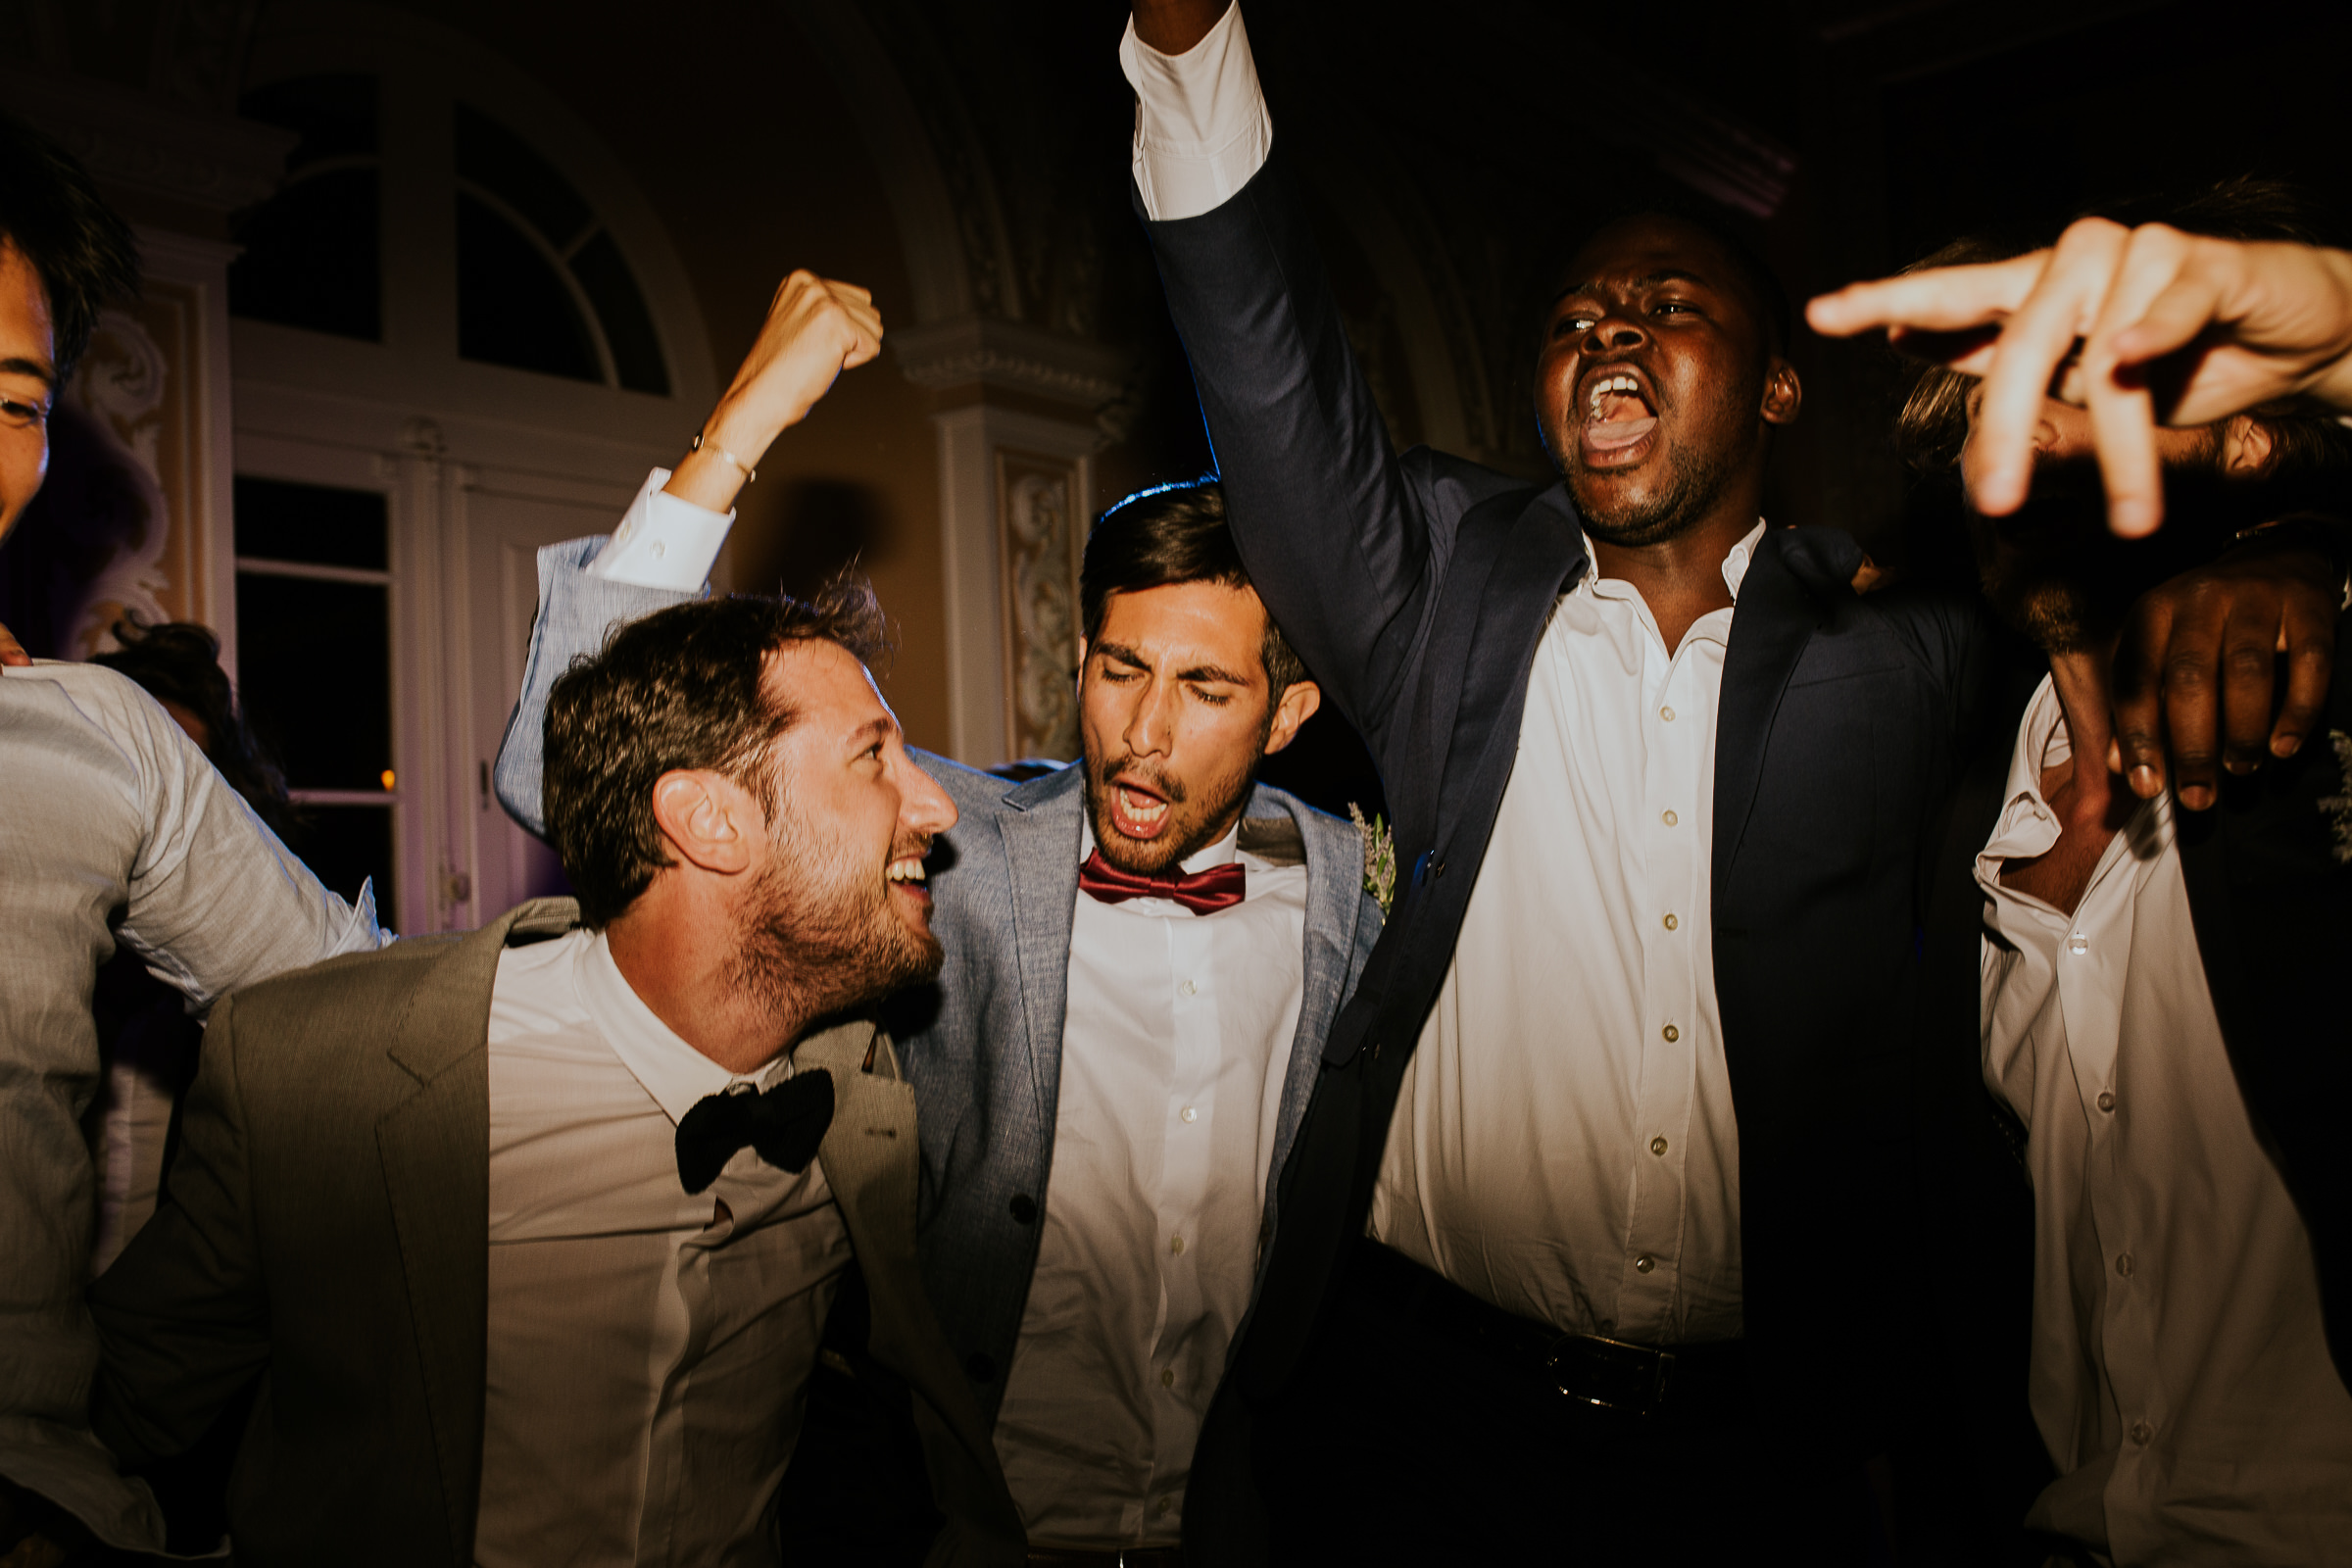 Guys partying hard in a wedding